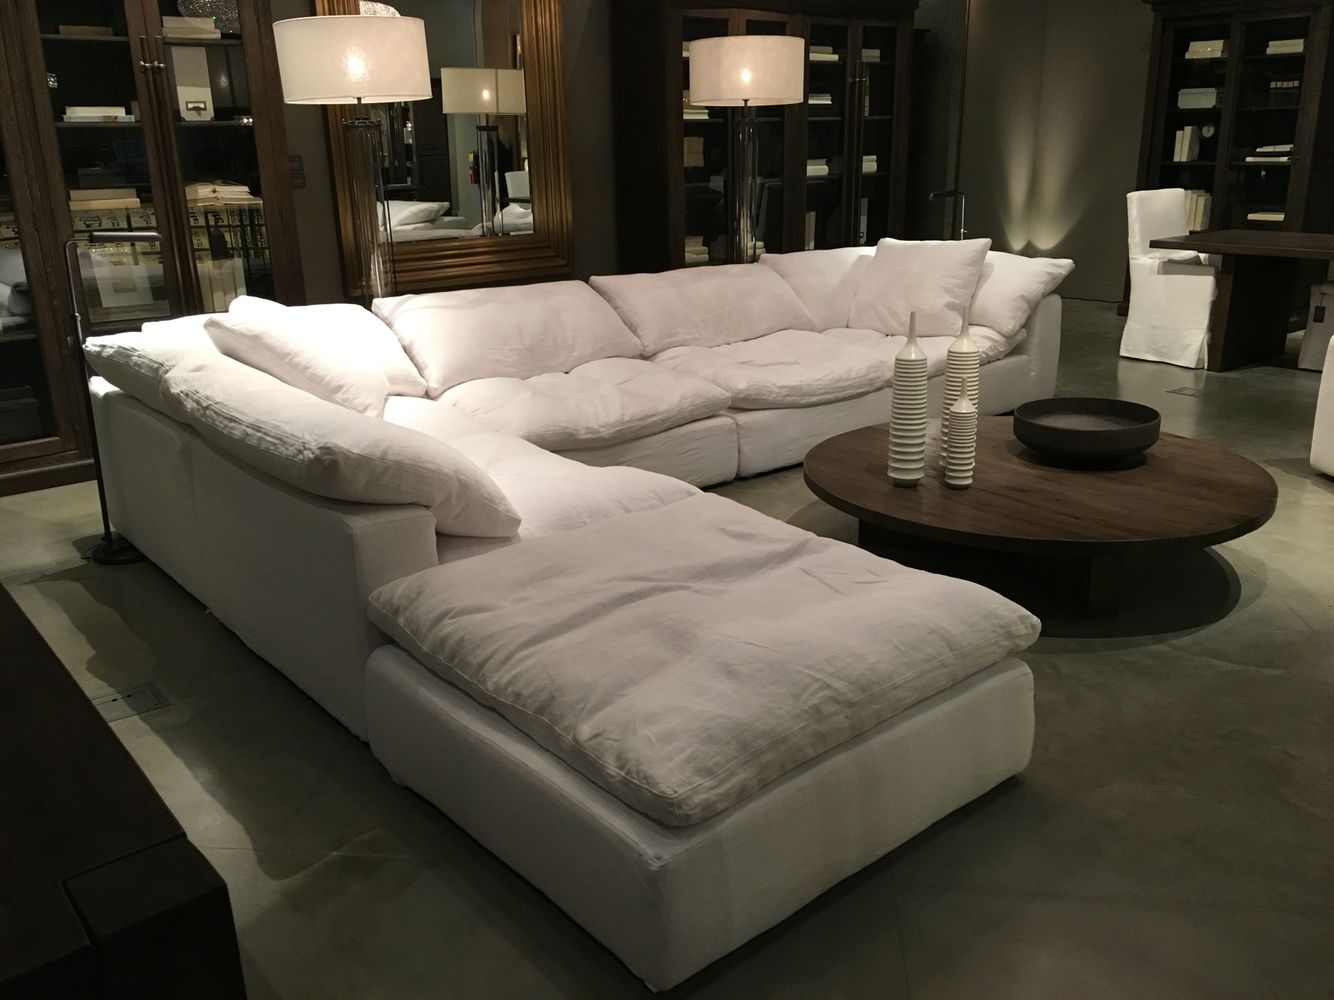 Restoration hardware sectional cloud couch future for Sectional couch